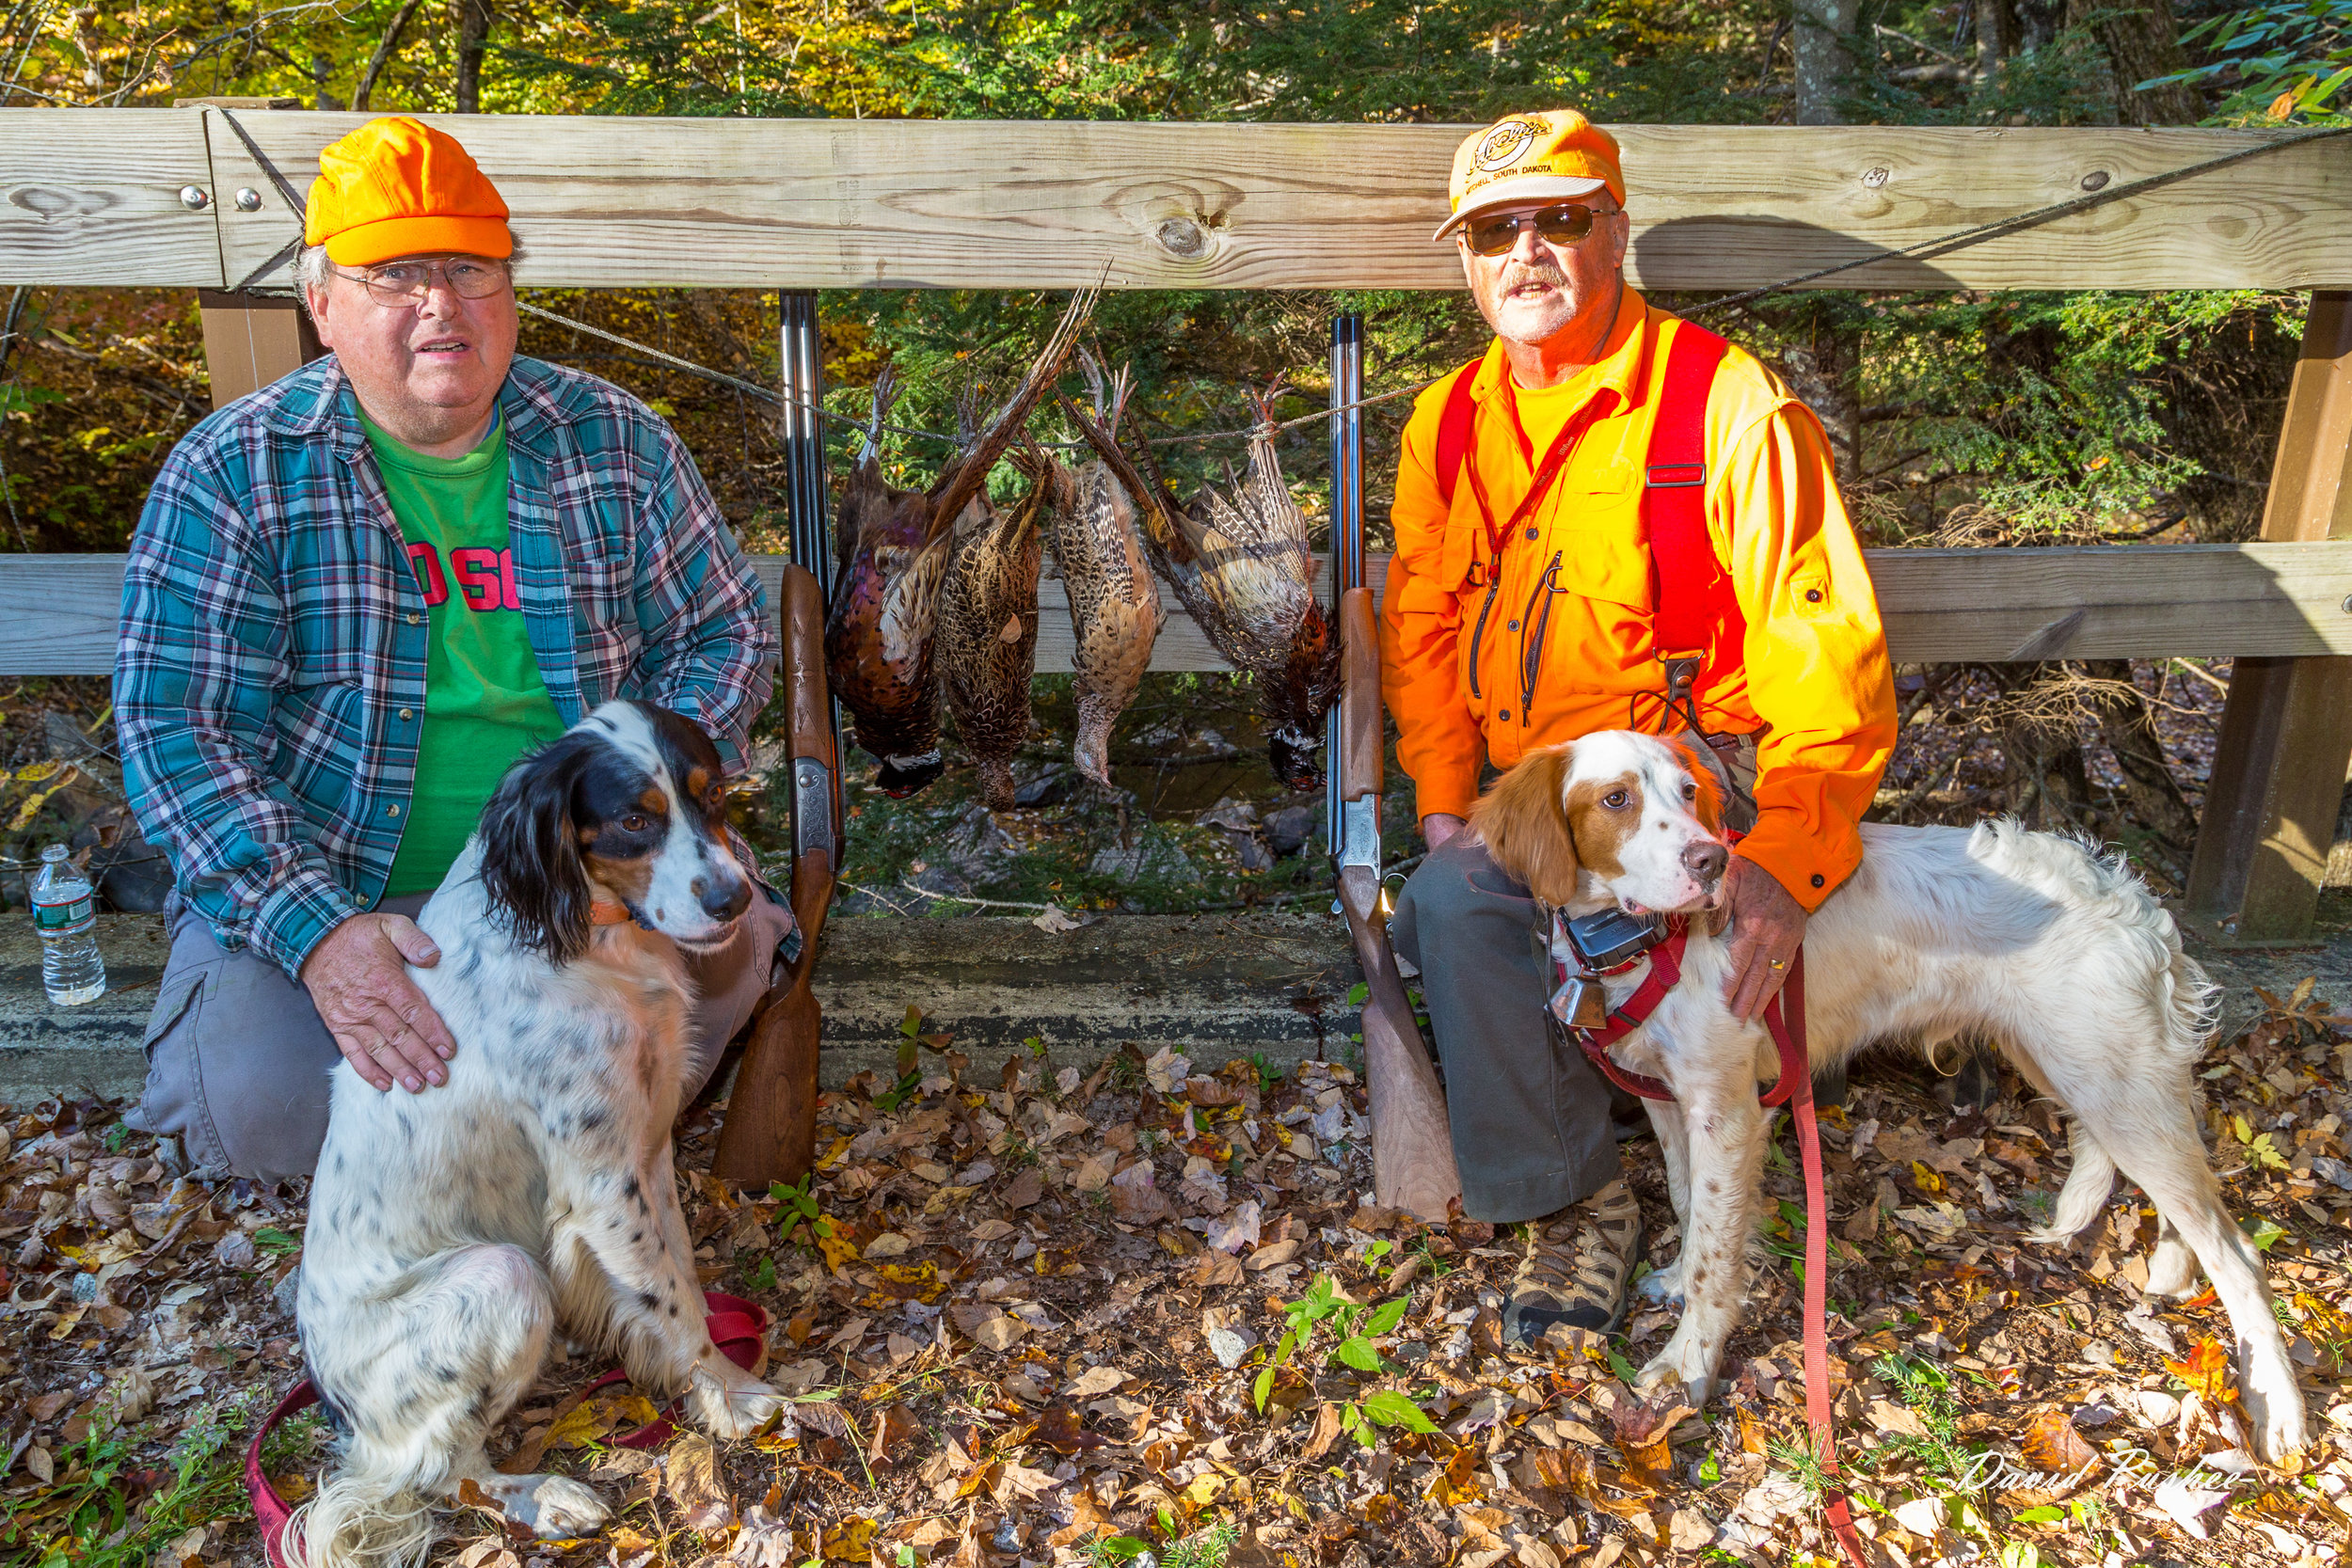 Merlin & Llewie  October 2016  George,  I was a bit nervous about taking Llewie out for pheasant this year, but he's been doing a fantastic job. I worked a lot harder on training my previous dogs than I did with Llewie – he just seemed to get it naturally. He has pointed a Grouse that I shot; has pointed several woodcock, a few of which have been collected; and has pointed quite a few pheasant. Friday and yesterday, Dave Suitor and I hunted with Llewie and Merlin in Hill. Both dogs were all business and we limited on pheasant both days. I'm including a few photos from Friday.  For a dog just 6 months old, Llewie is doing a fantastic job. He is still learning and has several items that could still use improvement – hunting dead and retrieving are the main ones.  Thanks for creating great dogs. - Dave Pushee